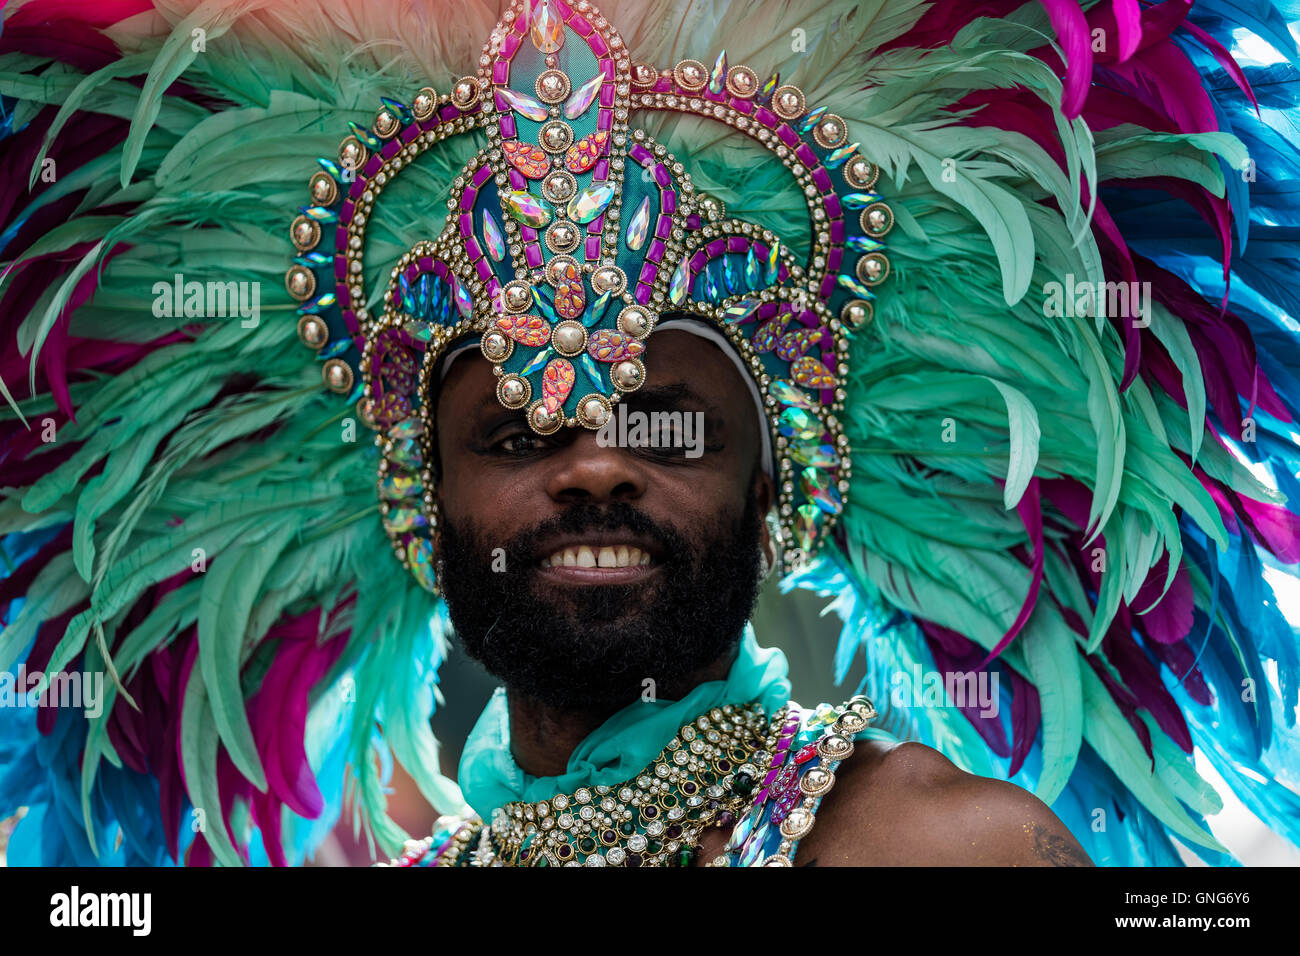 Black African looking man dressed in bright green feathers and headdress for the Notting Hill Carnival - Stock Image